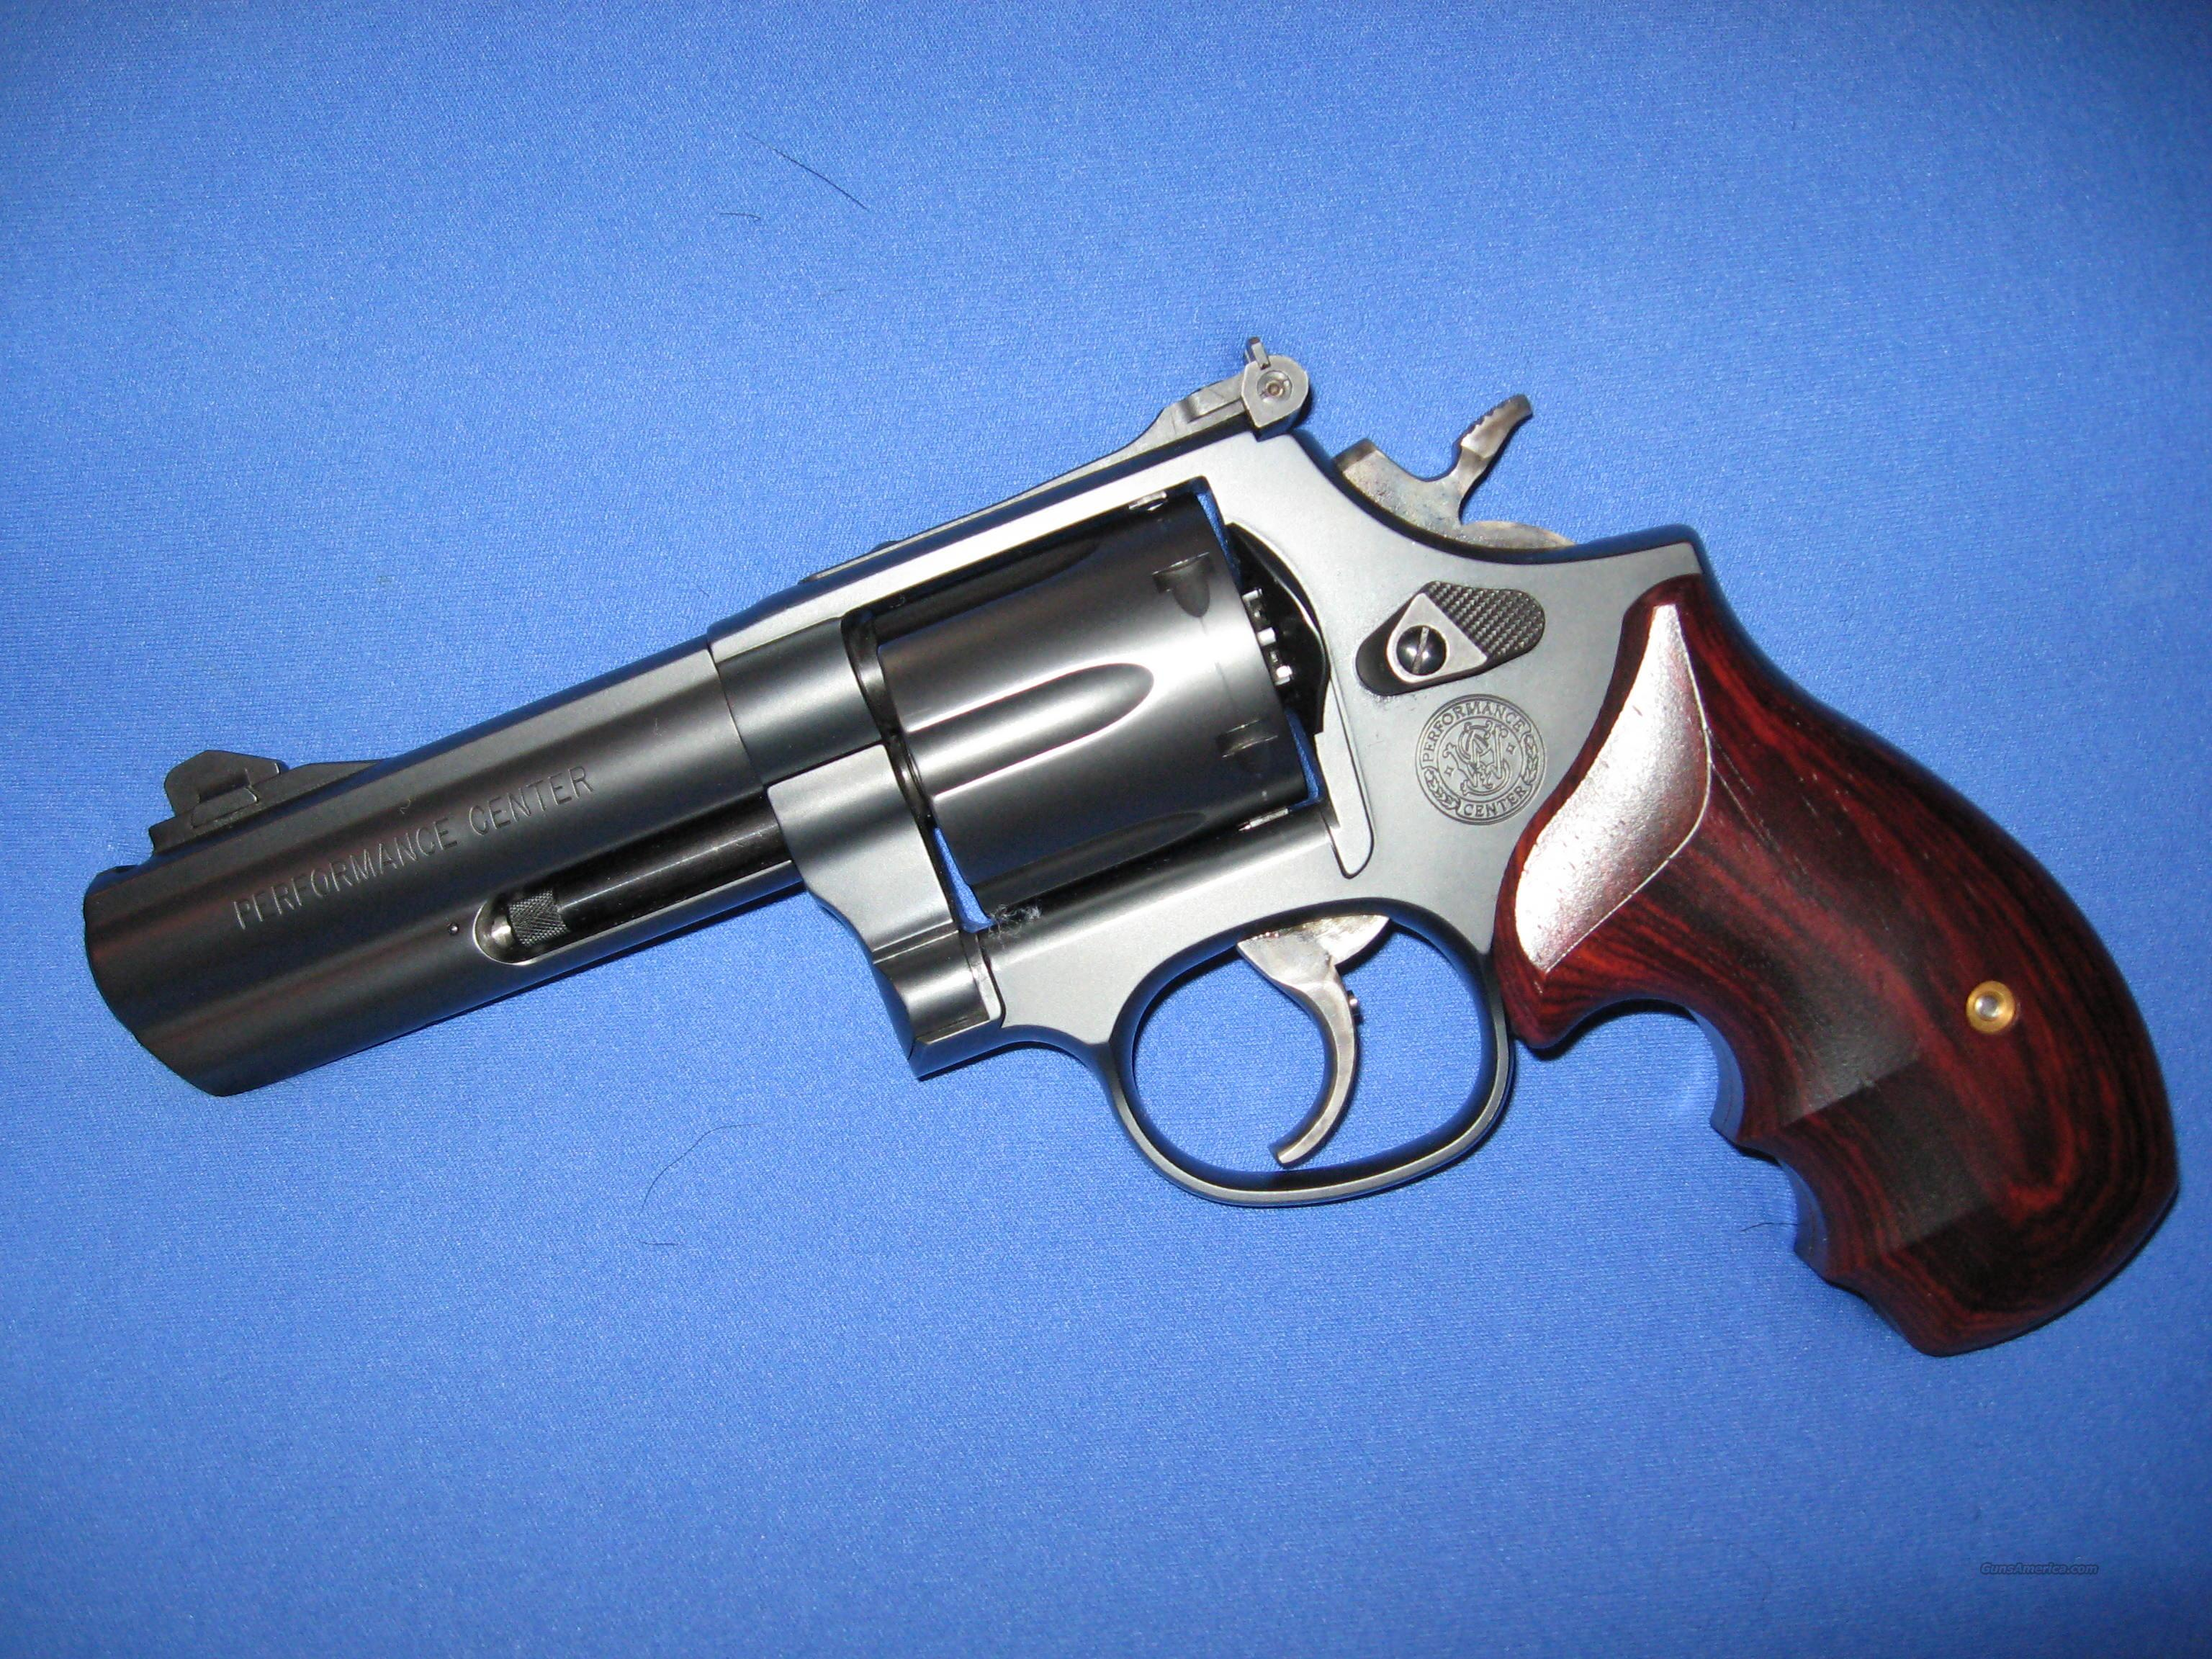 Smith & Wesson Performance Center 586 L-Comp 4-in   Guns > Pistols > Smith & Wesson Revolvers > Performance Center